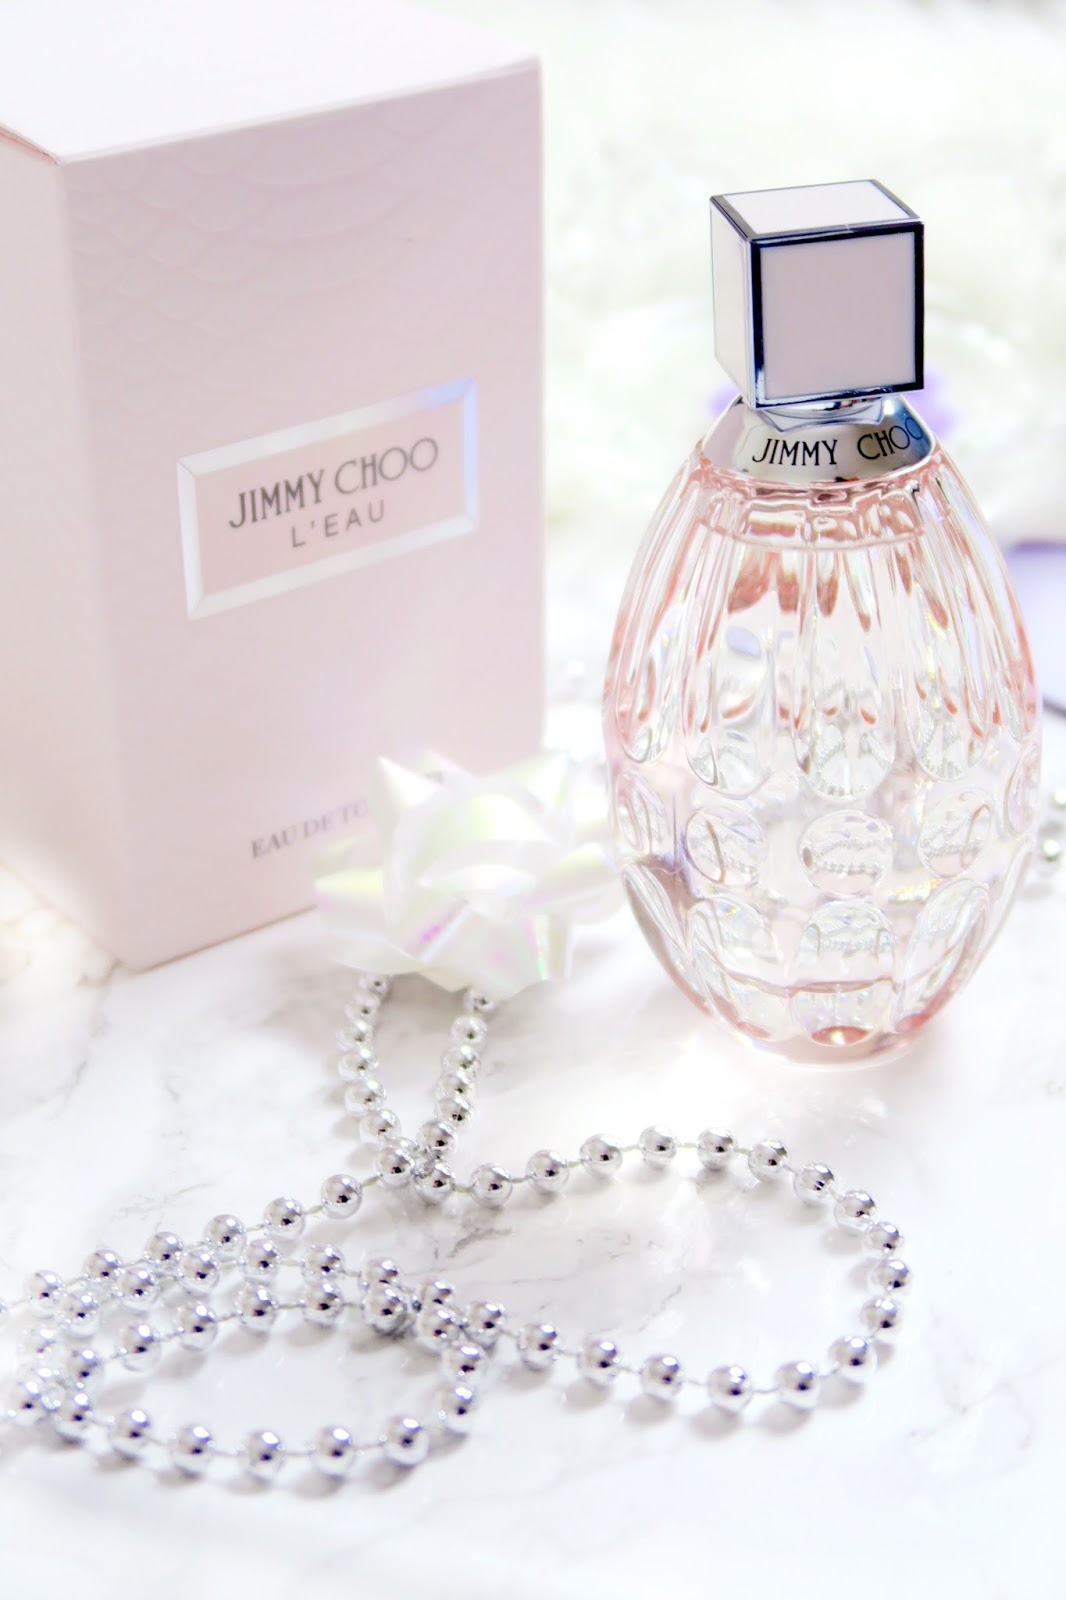 an image of the Jimmy Choo L'Eau Fragrance